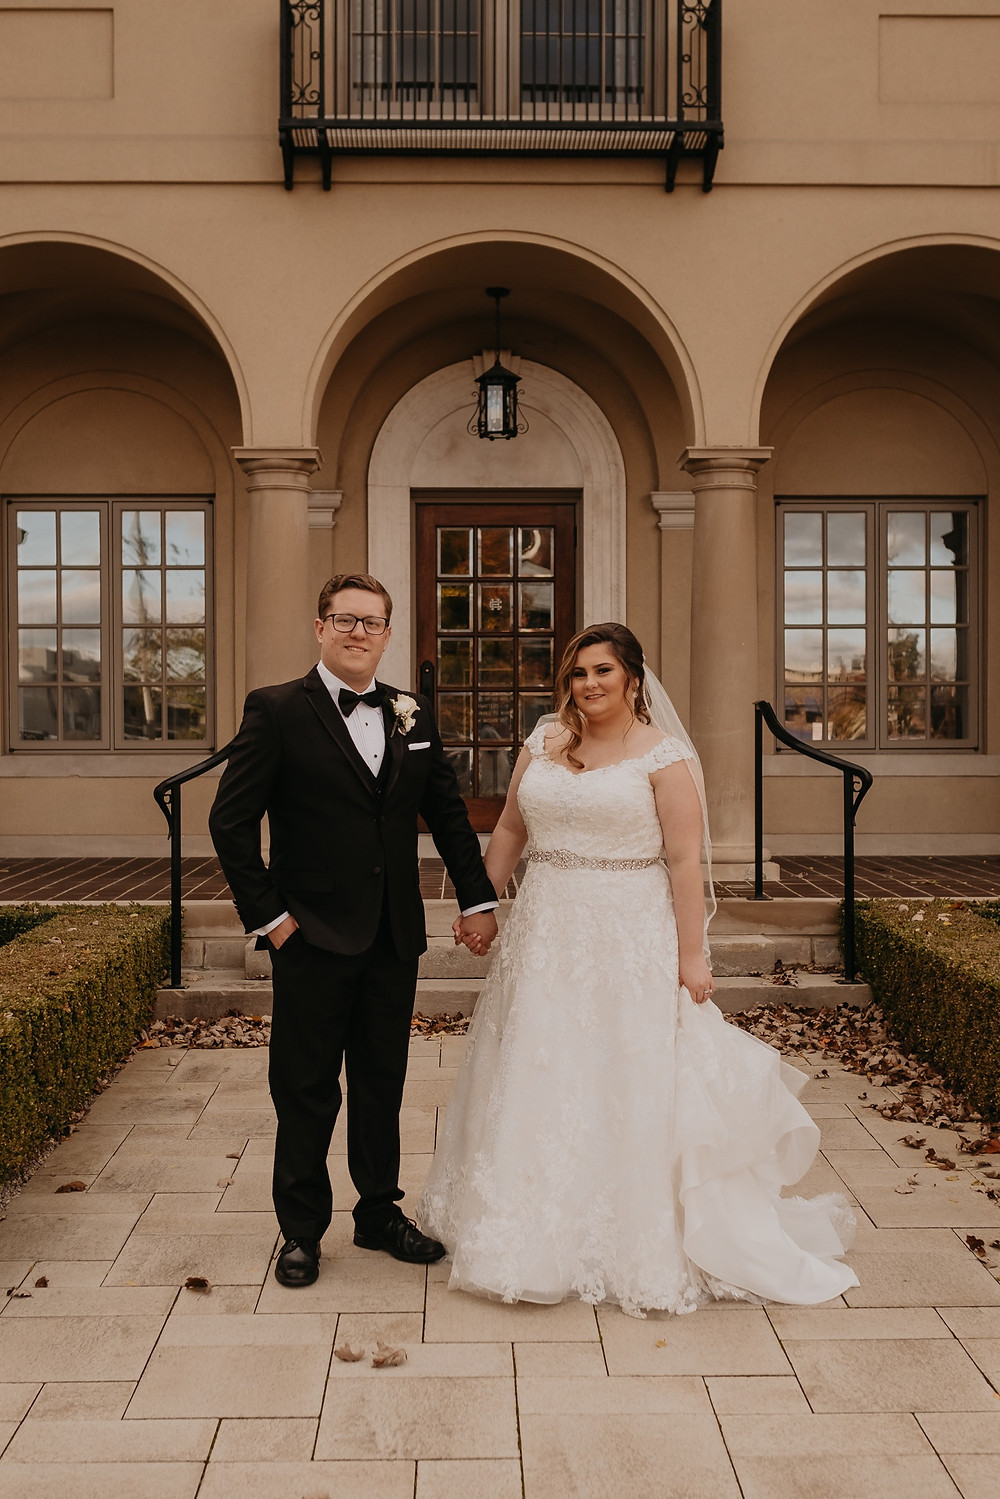 Downtown Rochester Michigan wedding photos. Photographed by Nicole Leanne Photography.